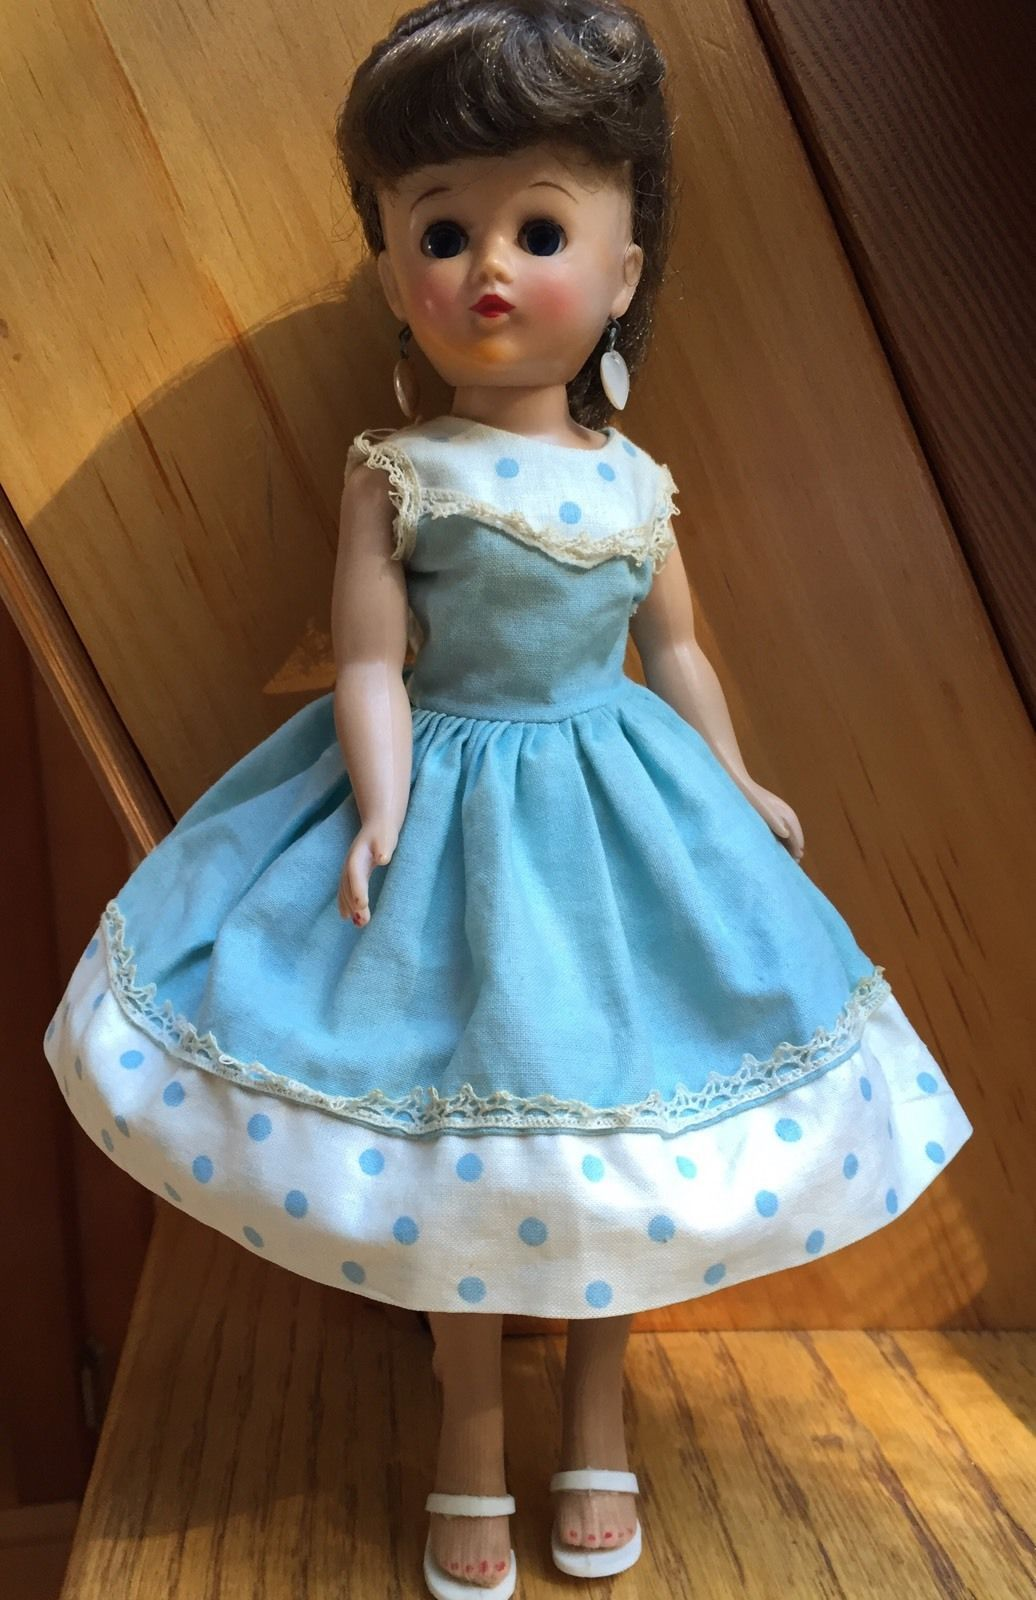 Vogue Doll Inc Jill Doll in Blue and White Party Dress | eBay ...